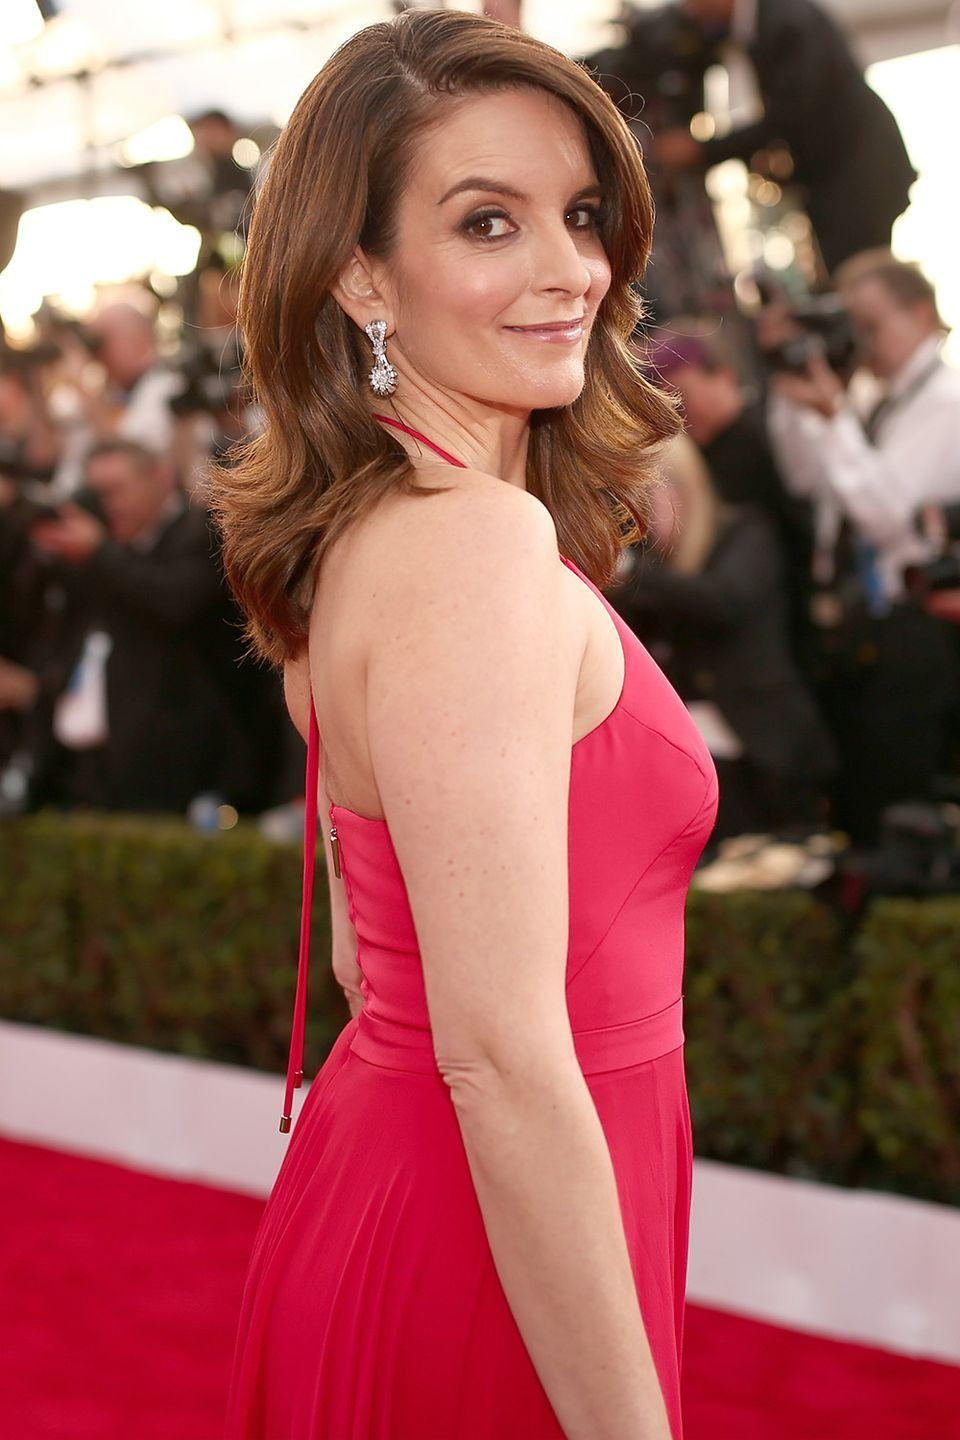 """<p><strong>Born</strong>: Elizabeth Stamatina Fey</p><p>Tina is actually a shorted version of the actress and comedian's middle name, Stamatina. Interestingly, Fey's <em>30 Rock</em> persona, Liz Lemon, is actually <a href=""""https://www.vogue.com/13300396/celebrities-who-changed-their-name/"""" rel=""""nofollow noopener"""" target=""""_blank"""" data-ylk=""""slk:a nod to her birth name"""" class=""""link rapid-noclick-resp"""">a nod to her birth name</a>, Elizabeth.</p>"""